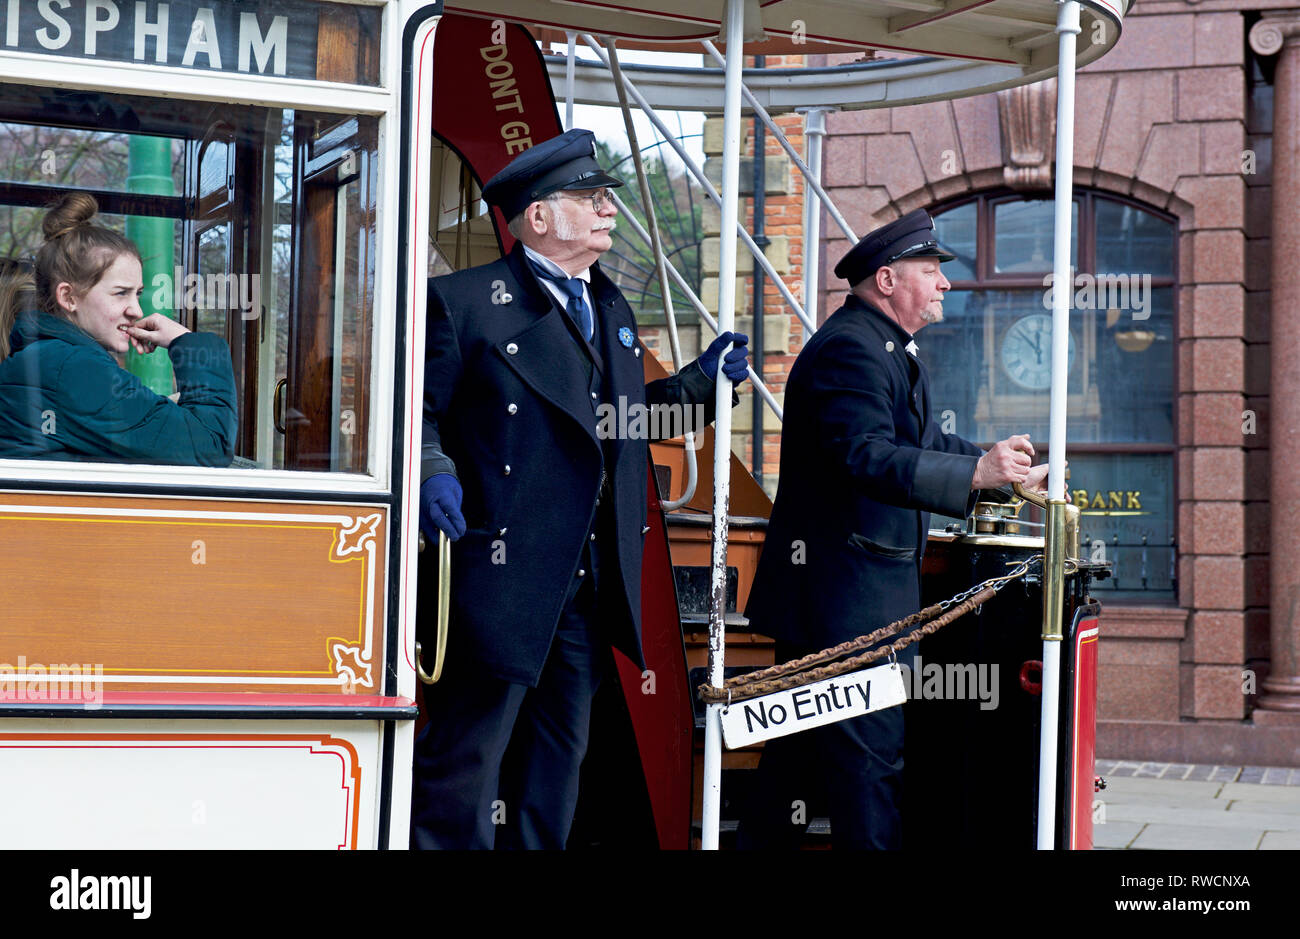 tram-at-beamish-museum-co-durham-england-uk-RWCNXA.jpg